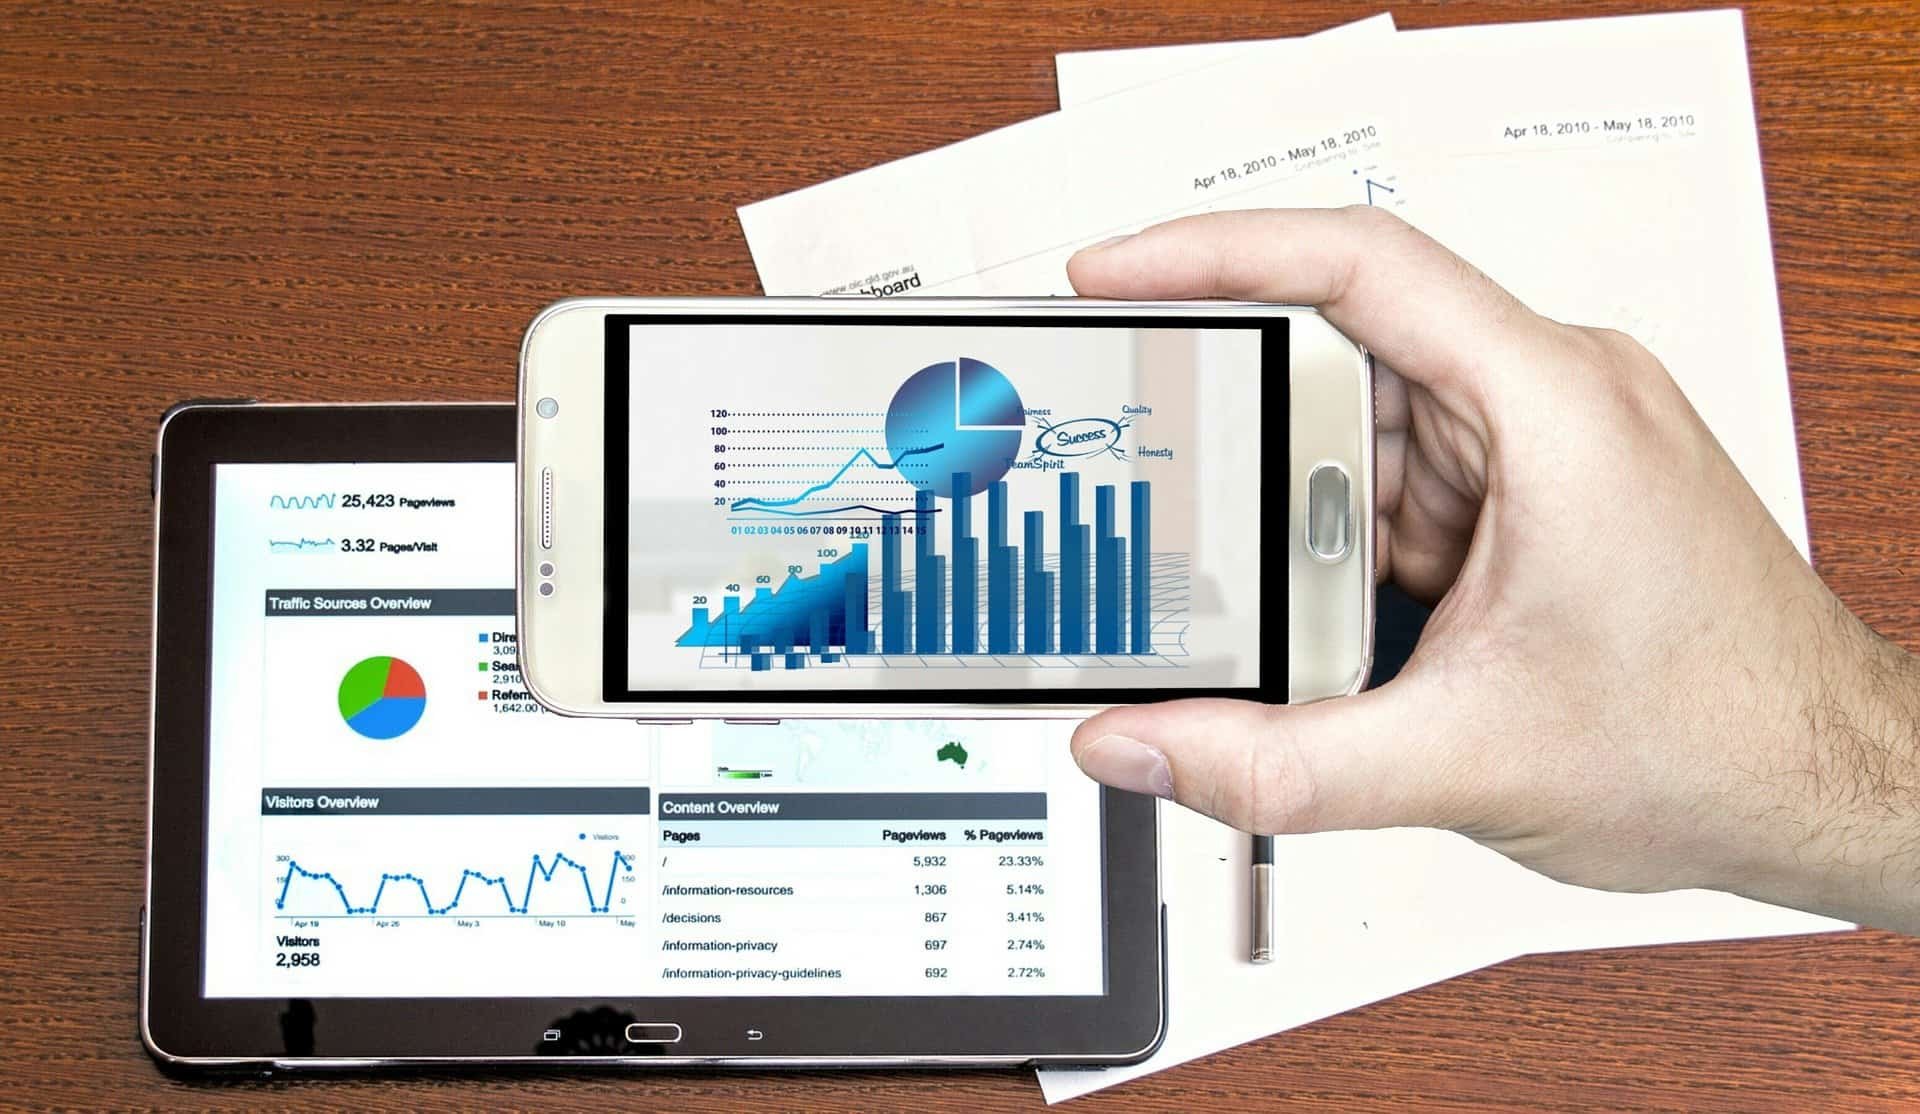 PPC Firm in San Francisco | PPC Firm Can Help Your Small Business